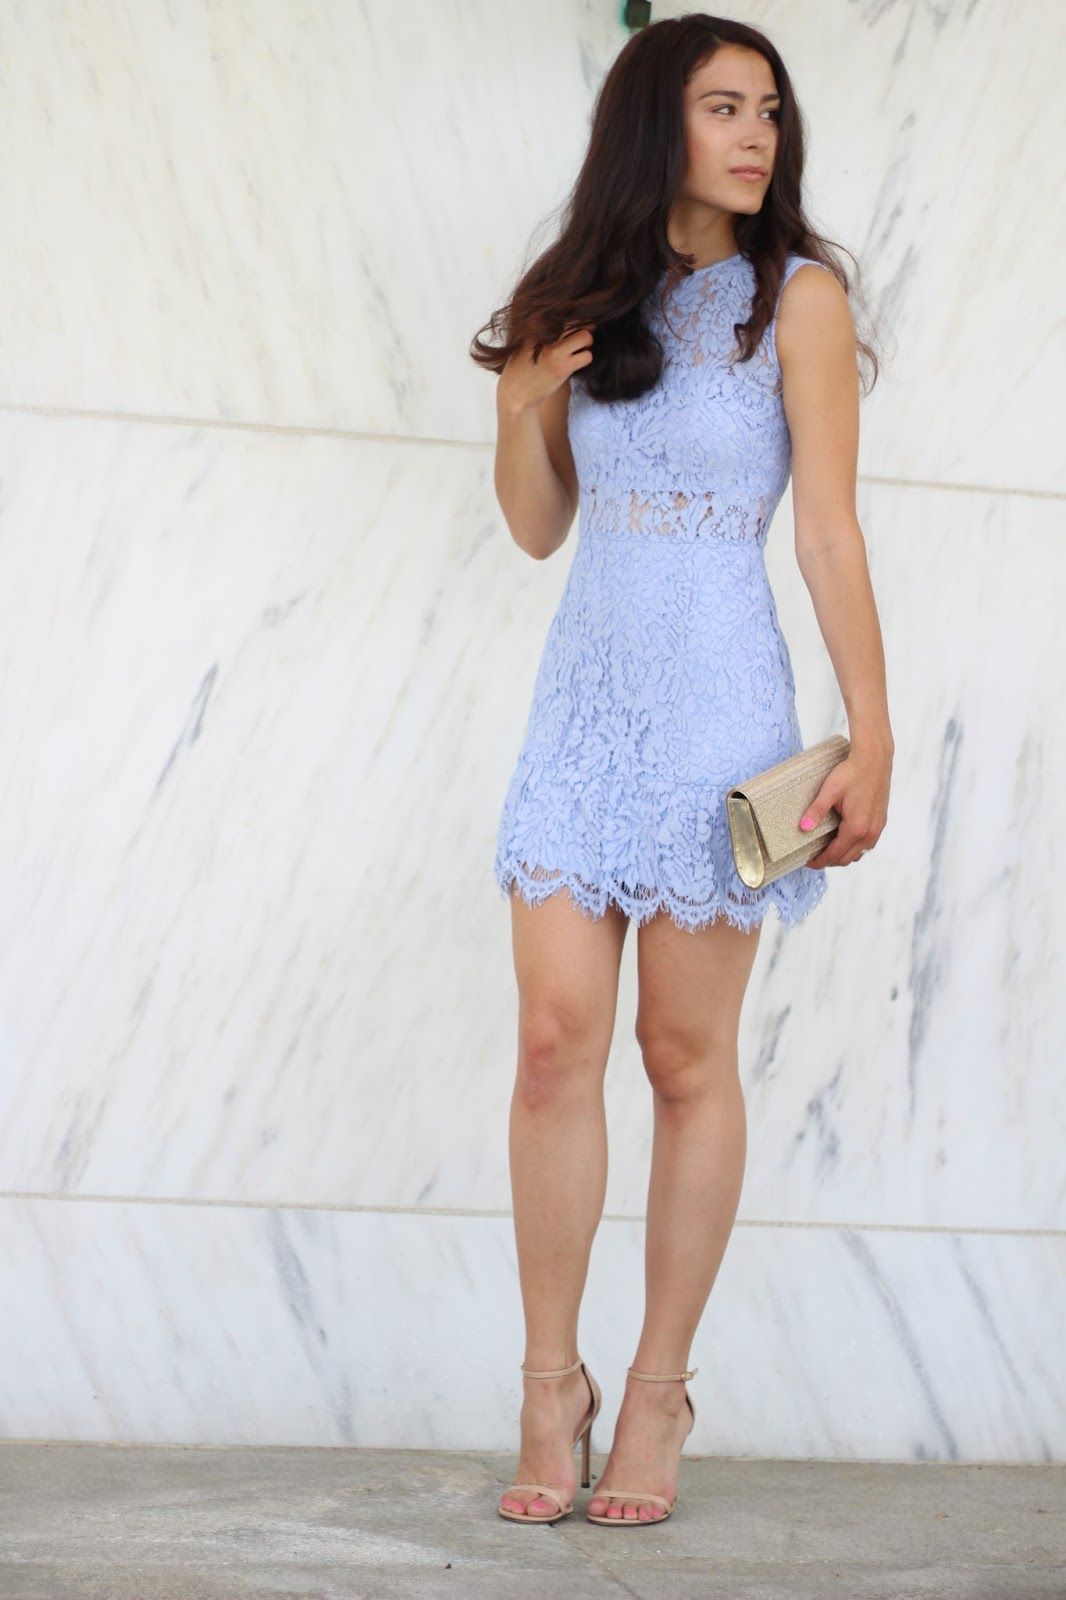 Blue lace dress for an afternoon wedding guest | My Style